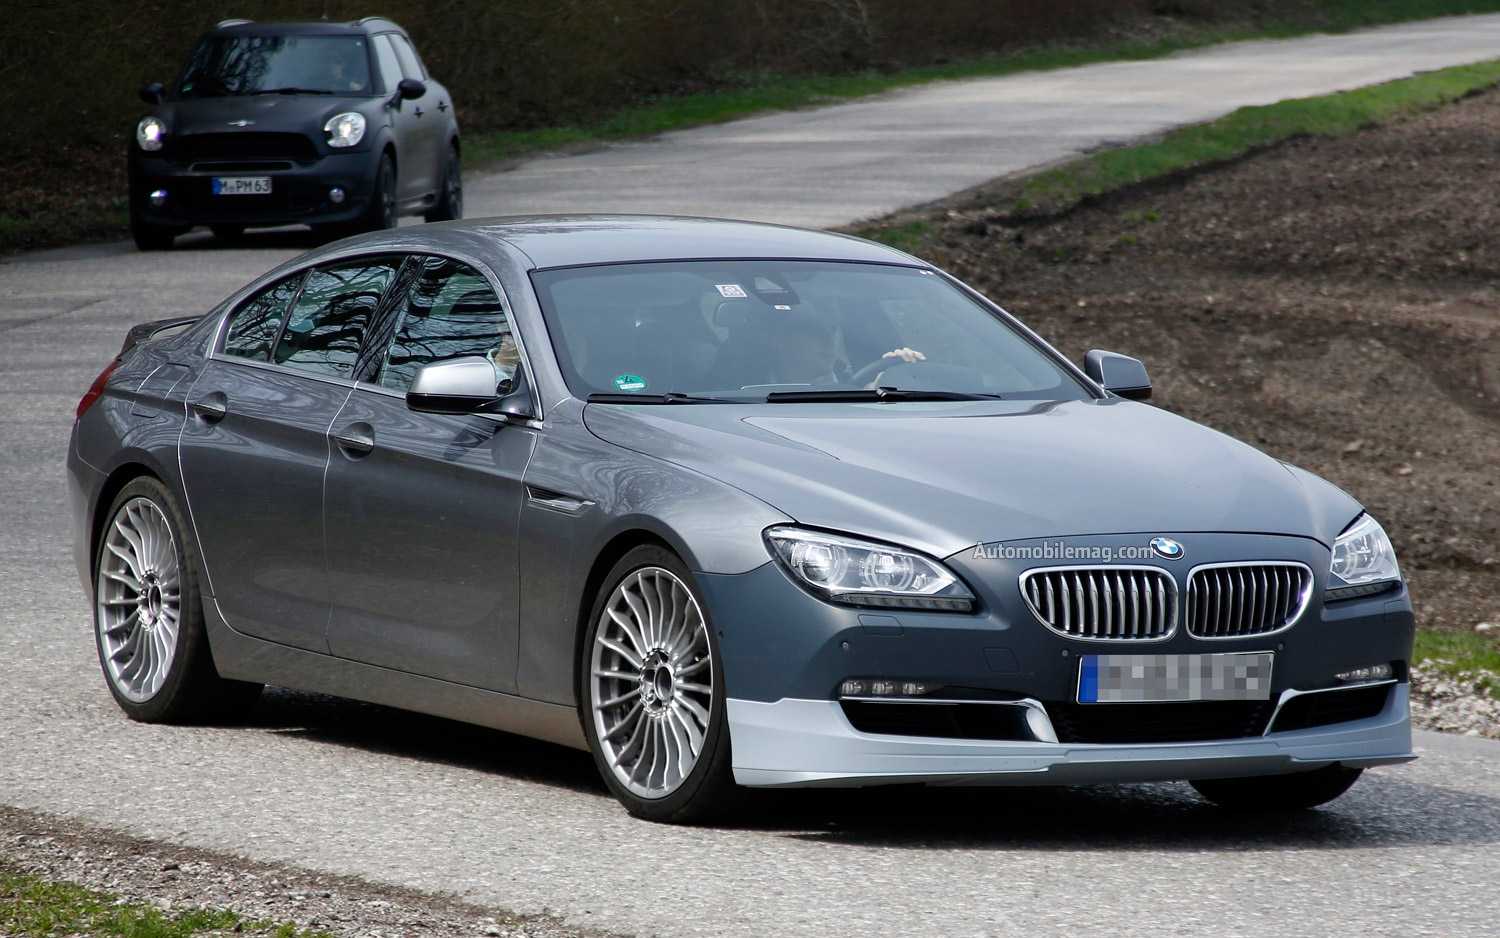 spied bmw 4 series convertible alpina 6 series gran coupe. Black Bedroom Furniture Sets. Home Design Ideas